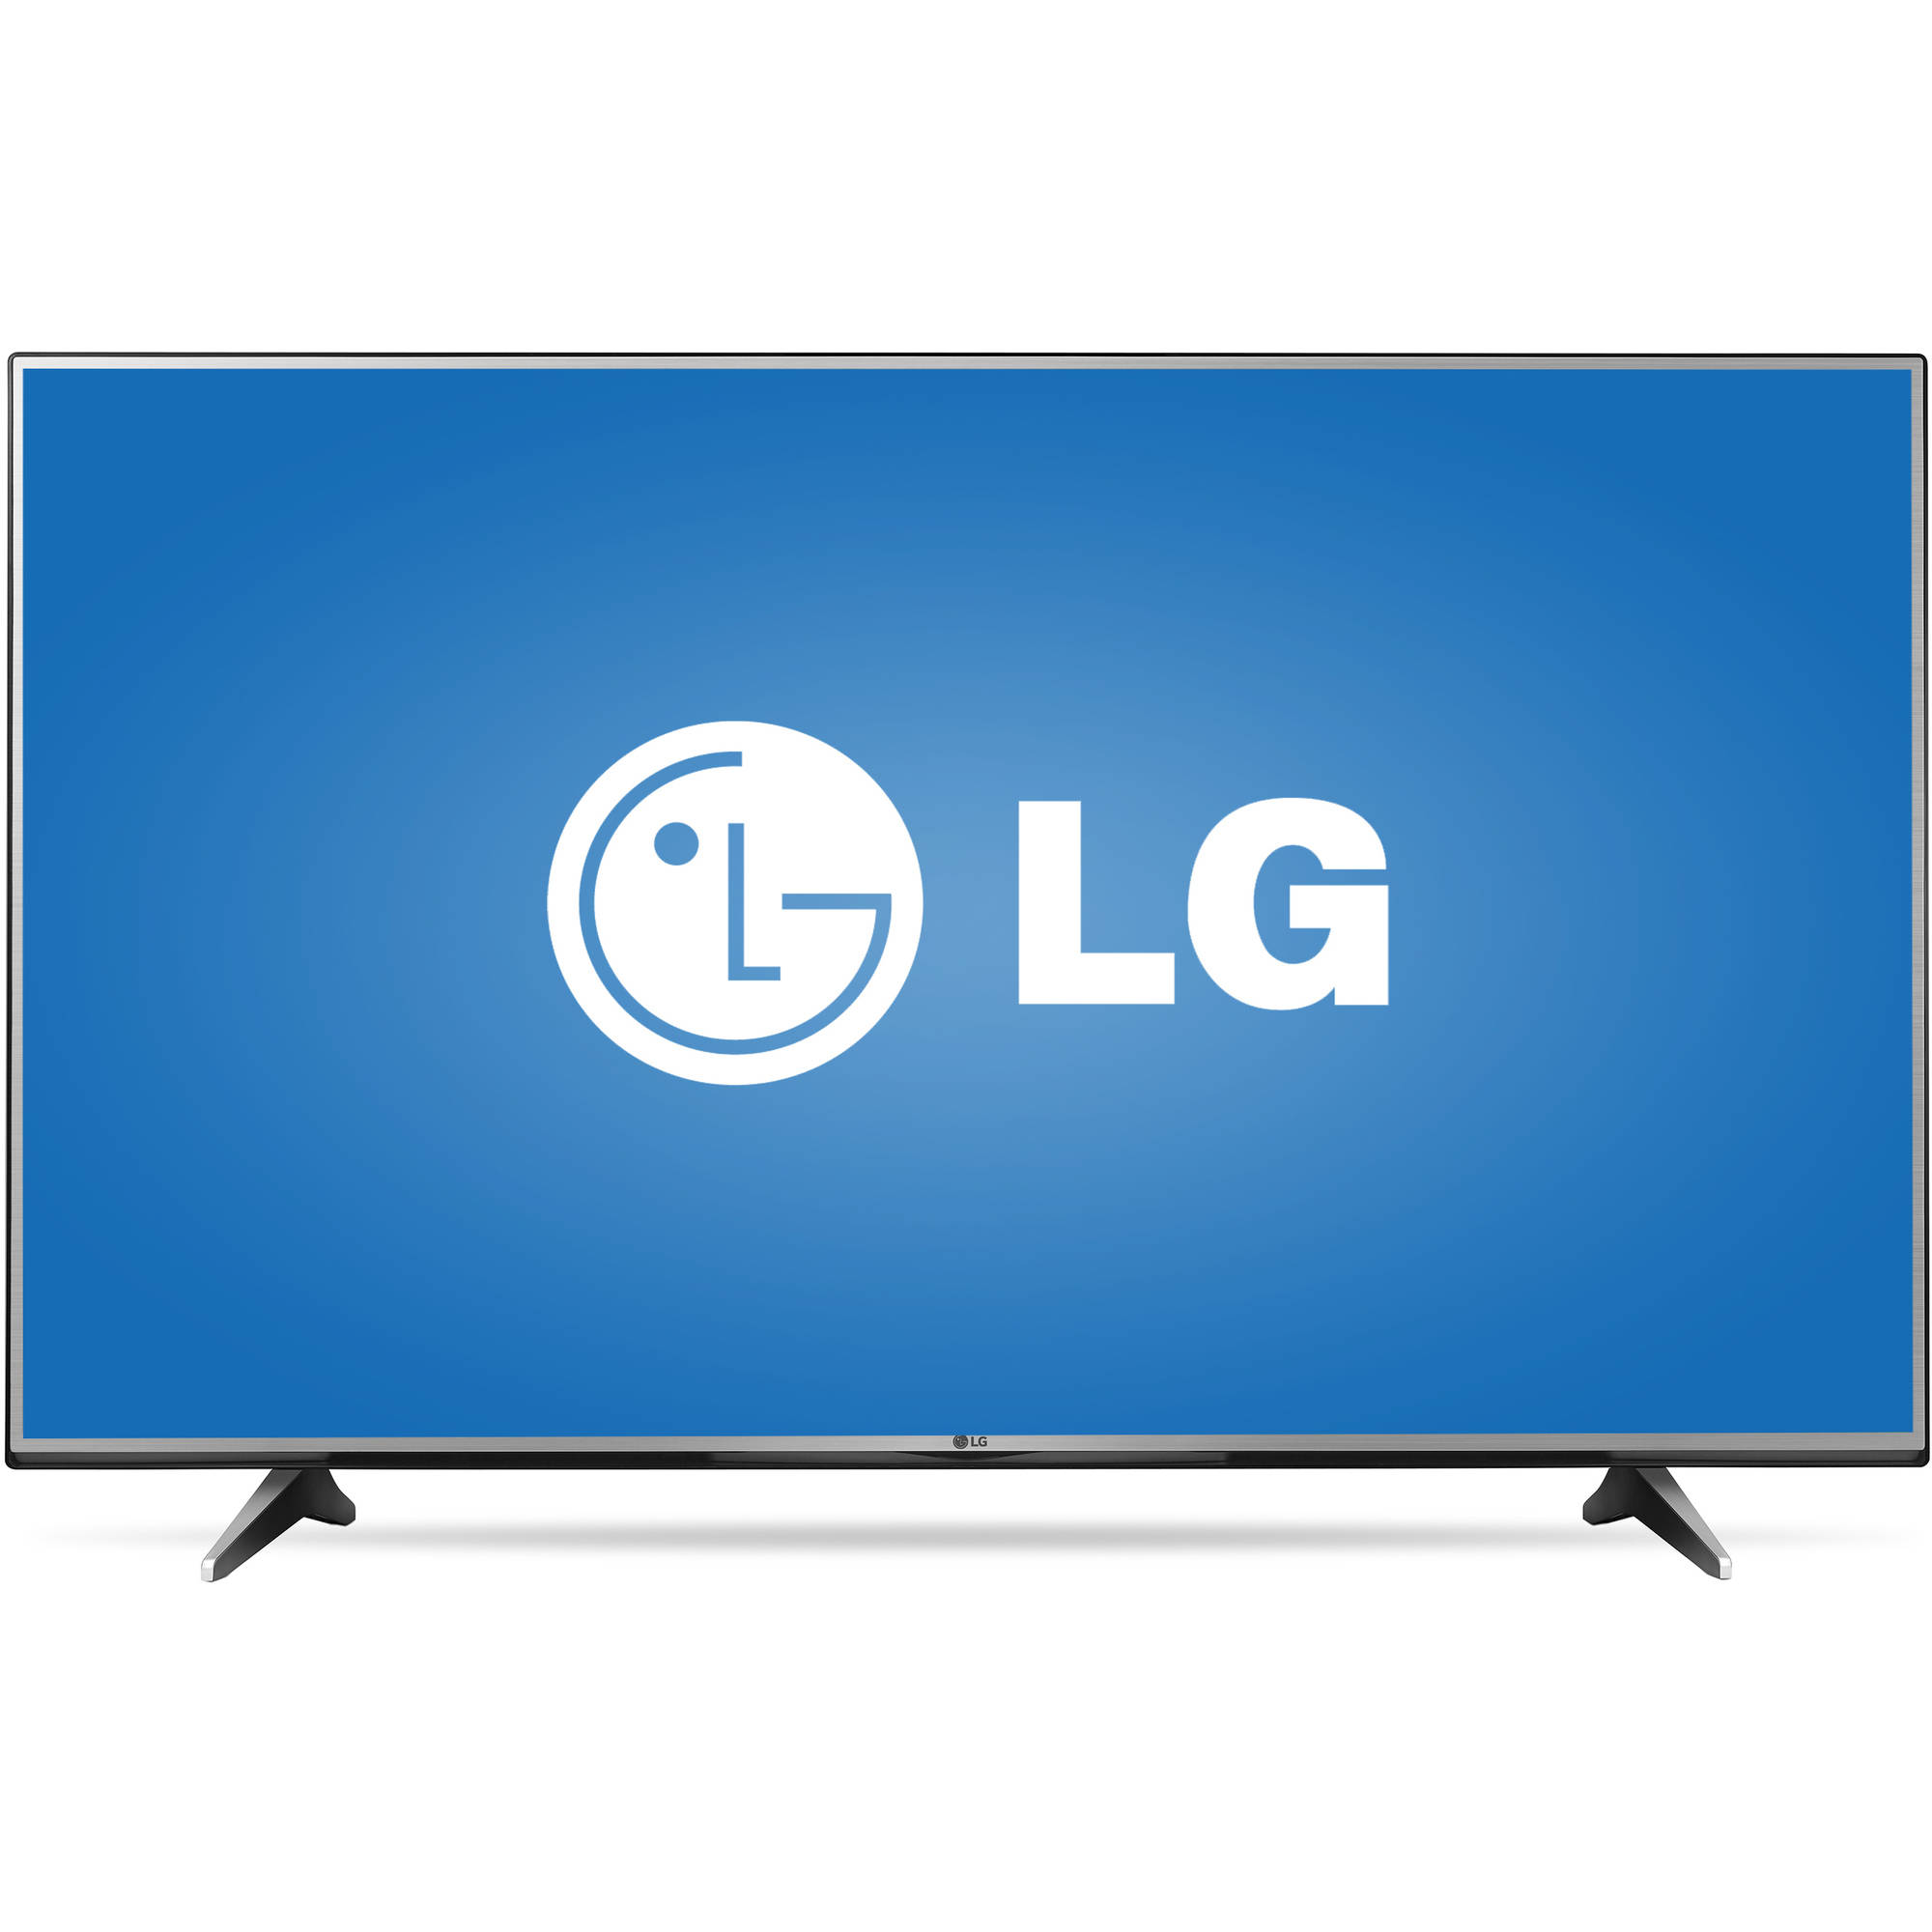 "LG 65UH6150 65"" 4K Ultra HD 2160p 120Hz LED Smart HDTV (4K x 2K)"